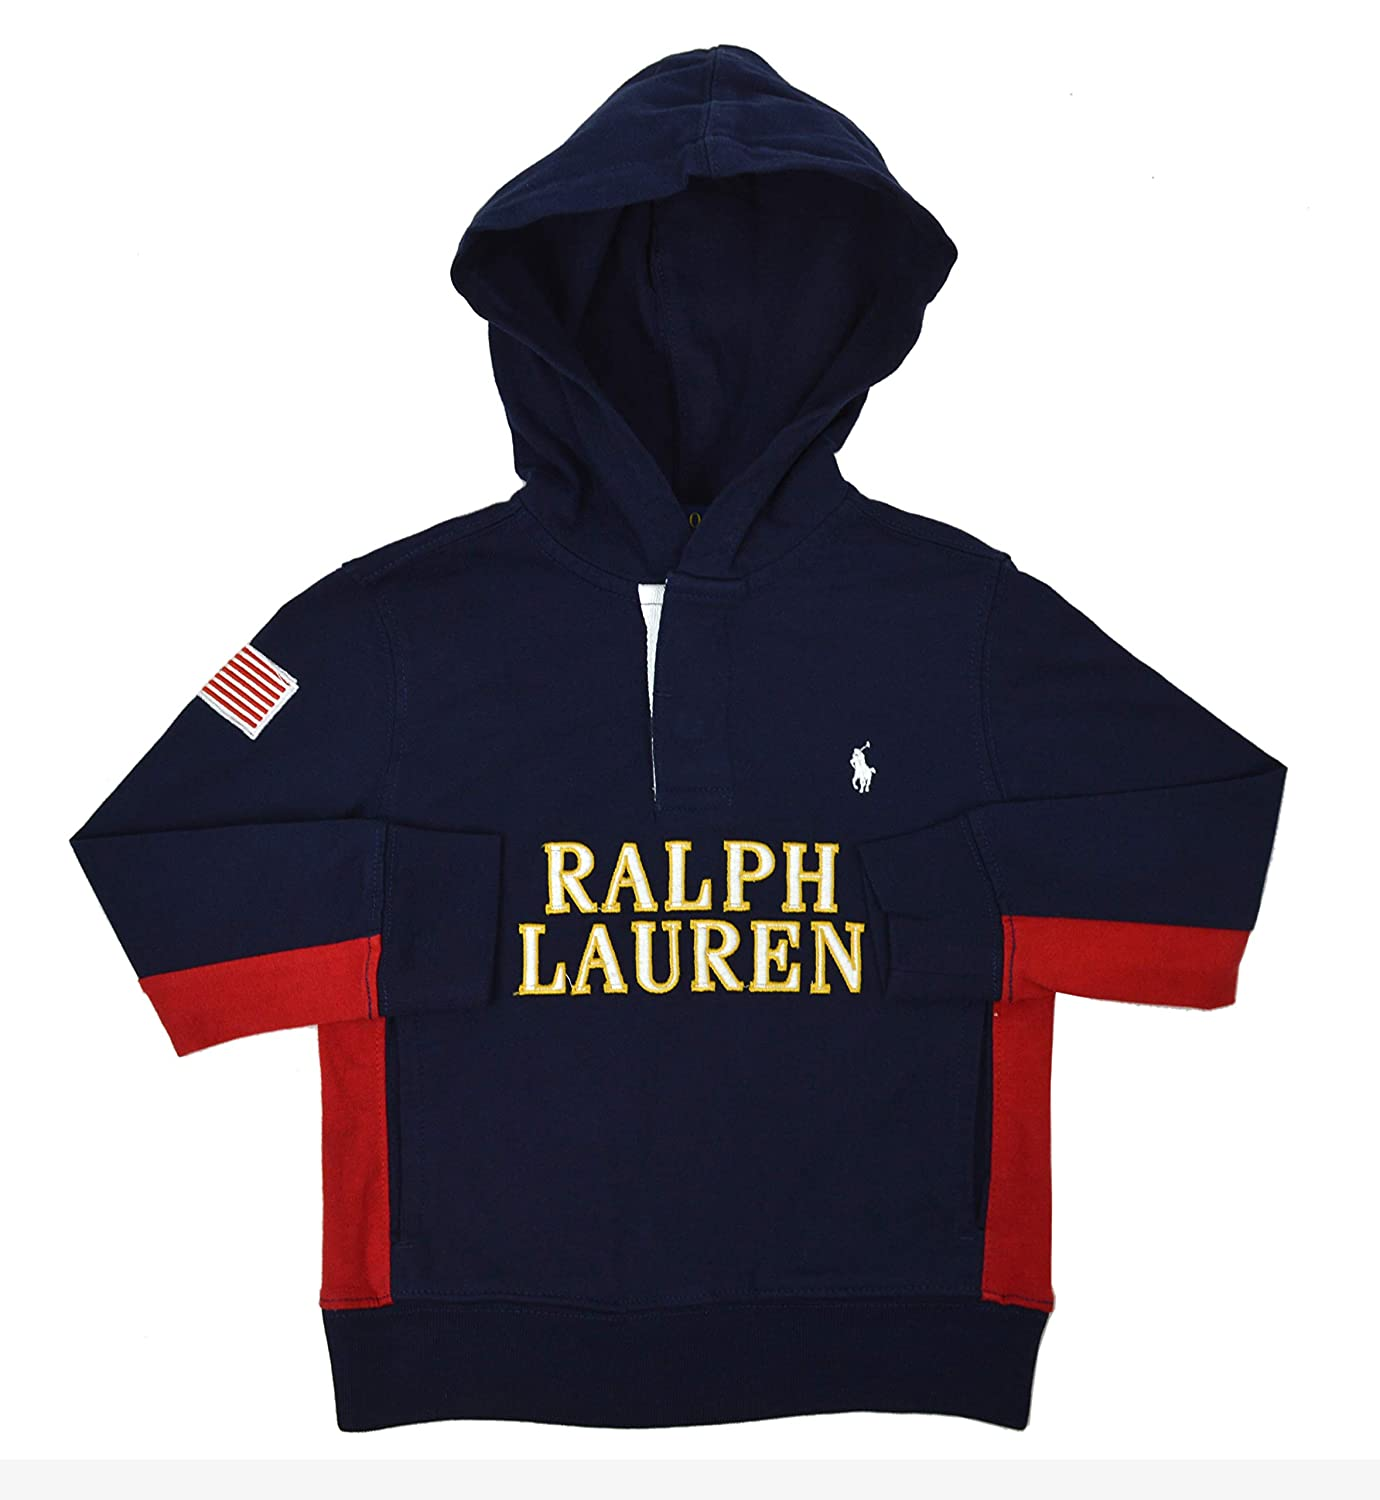 Polo Ralph Lauren Boys Toddlers Long Sleeve Hooded Rugby Polo Shirt Navy Blue